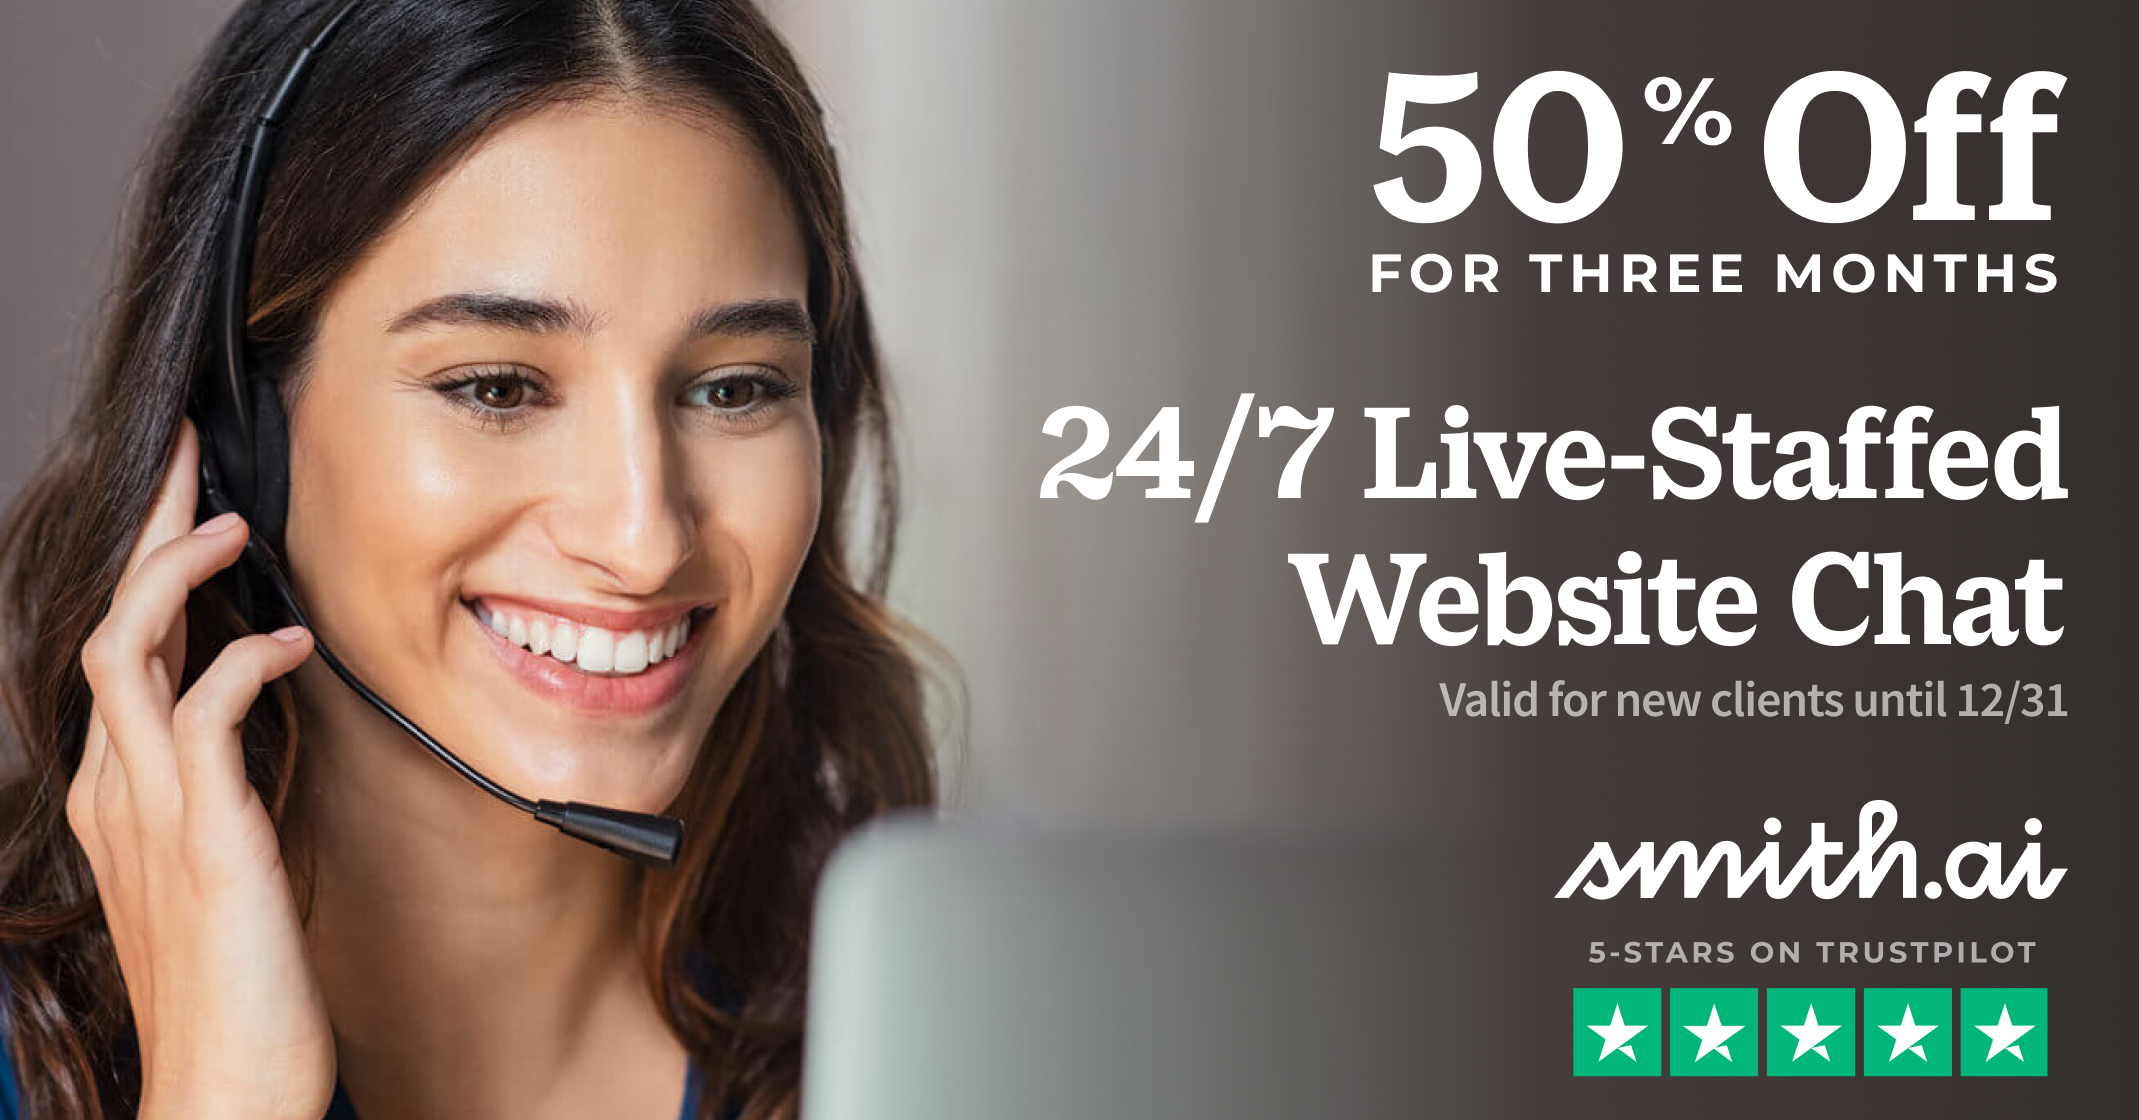 Get 50% Off Smith.ai Live Chat for 3 Months — Ends Dec 31, 2021